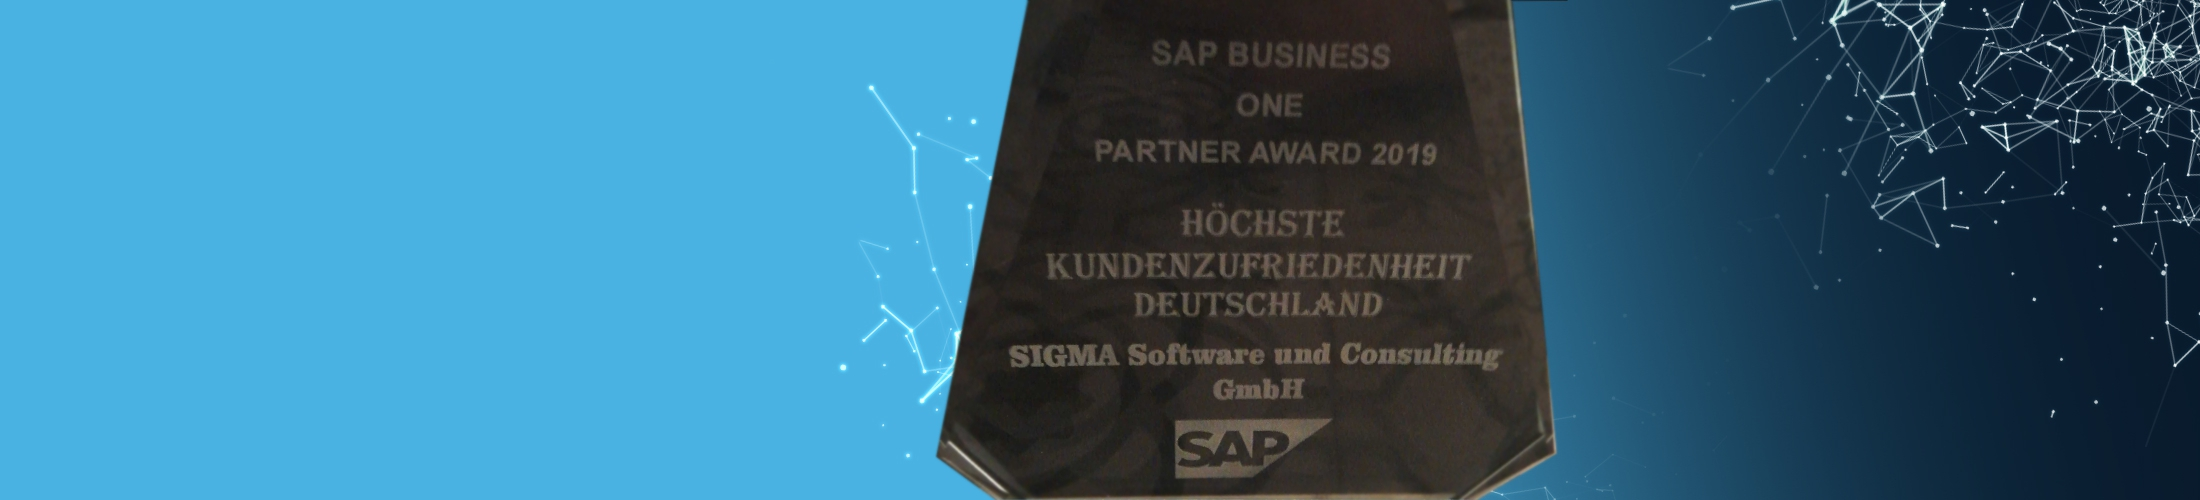 SAP Business One Partner Award Kundenzufriedenheit Deutschland 2019 SIGMA